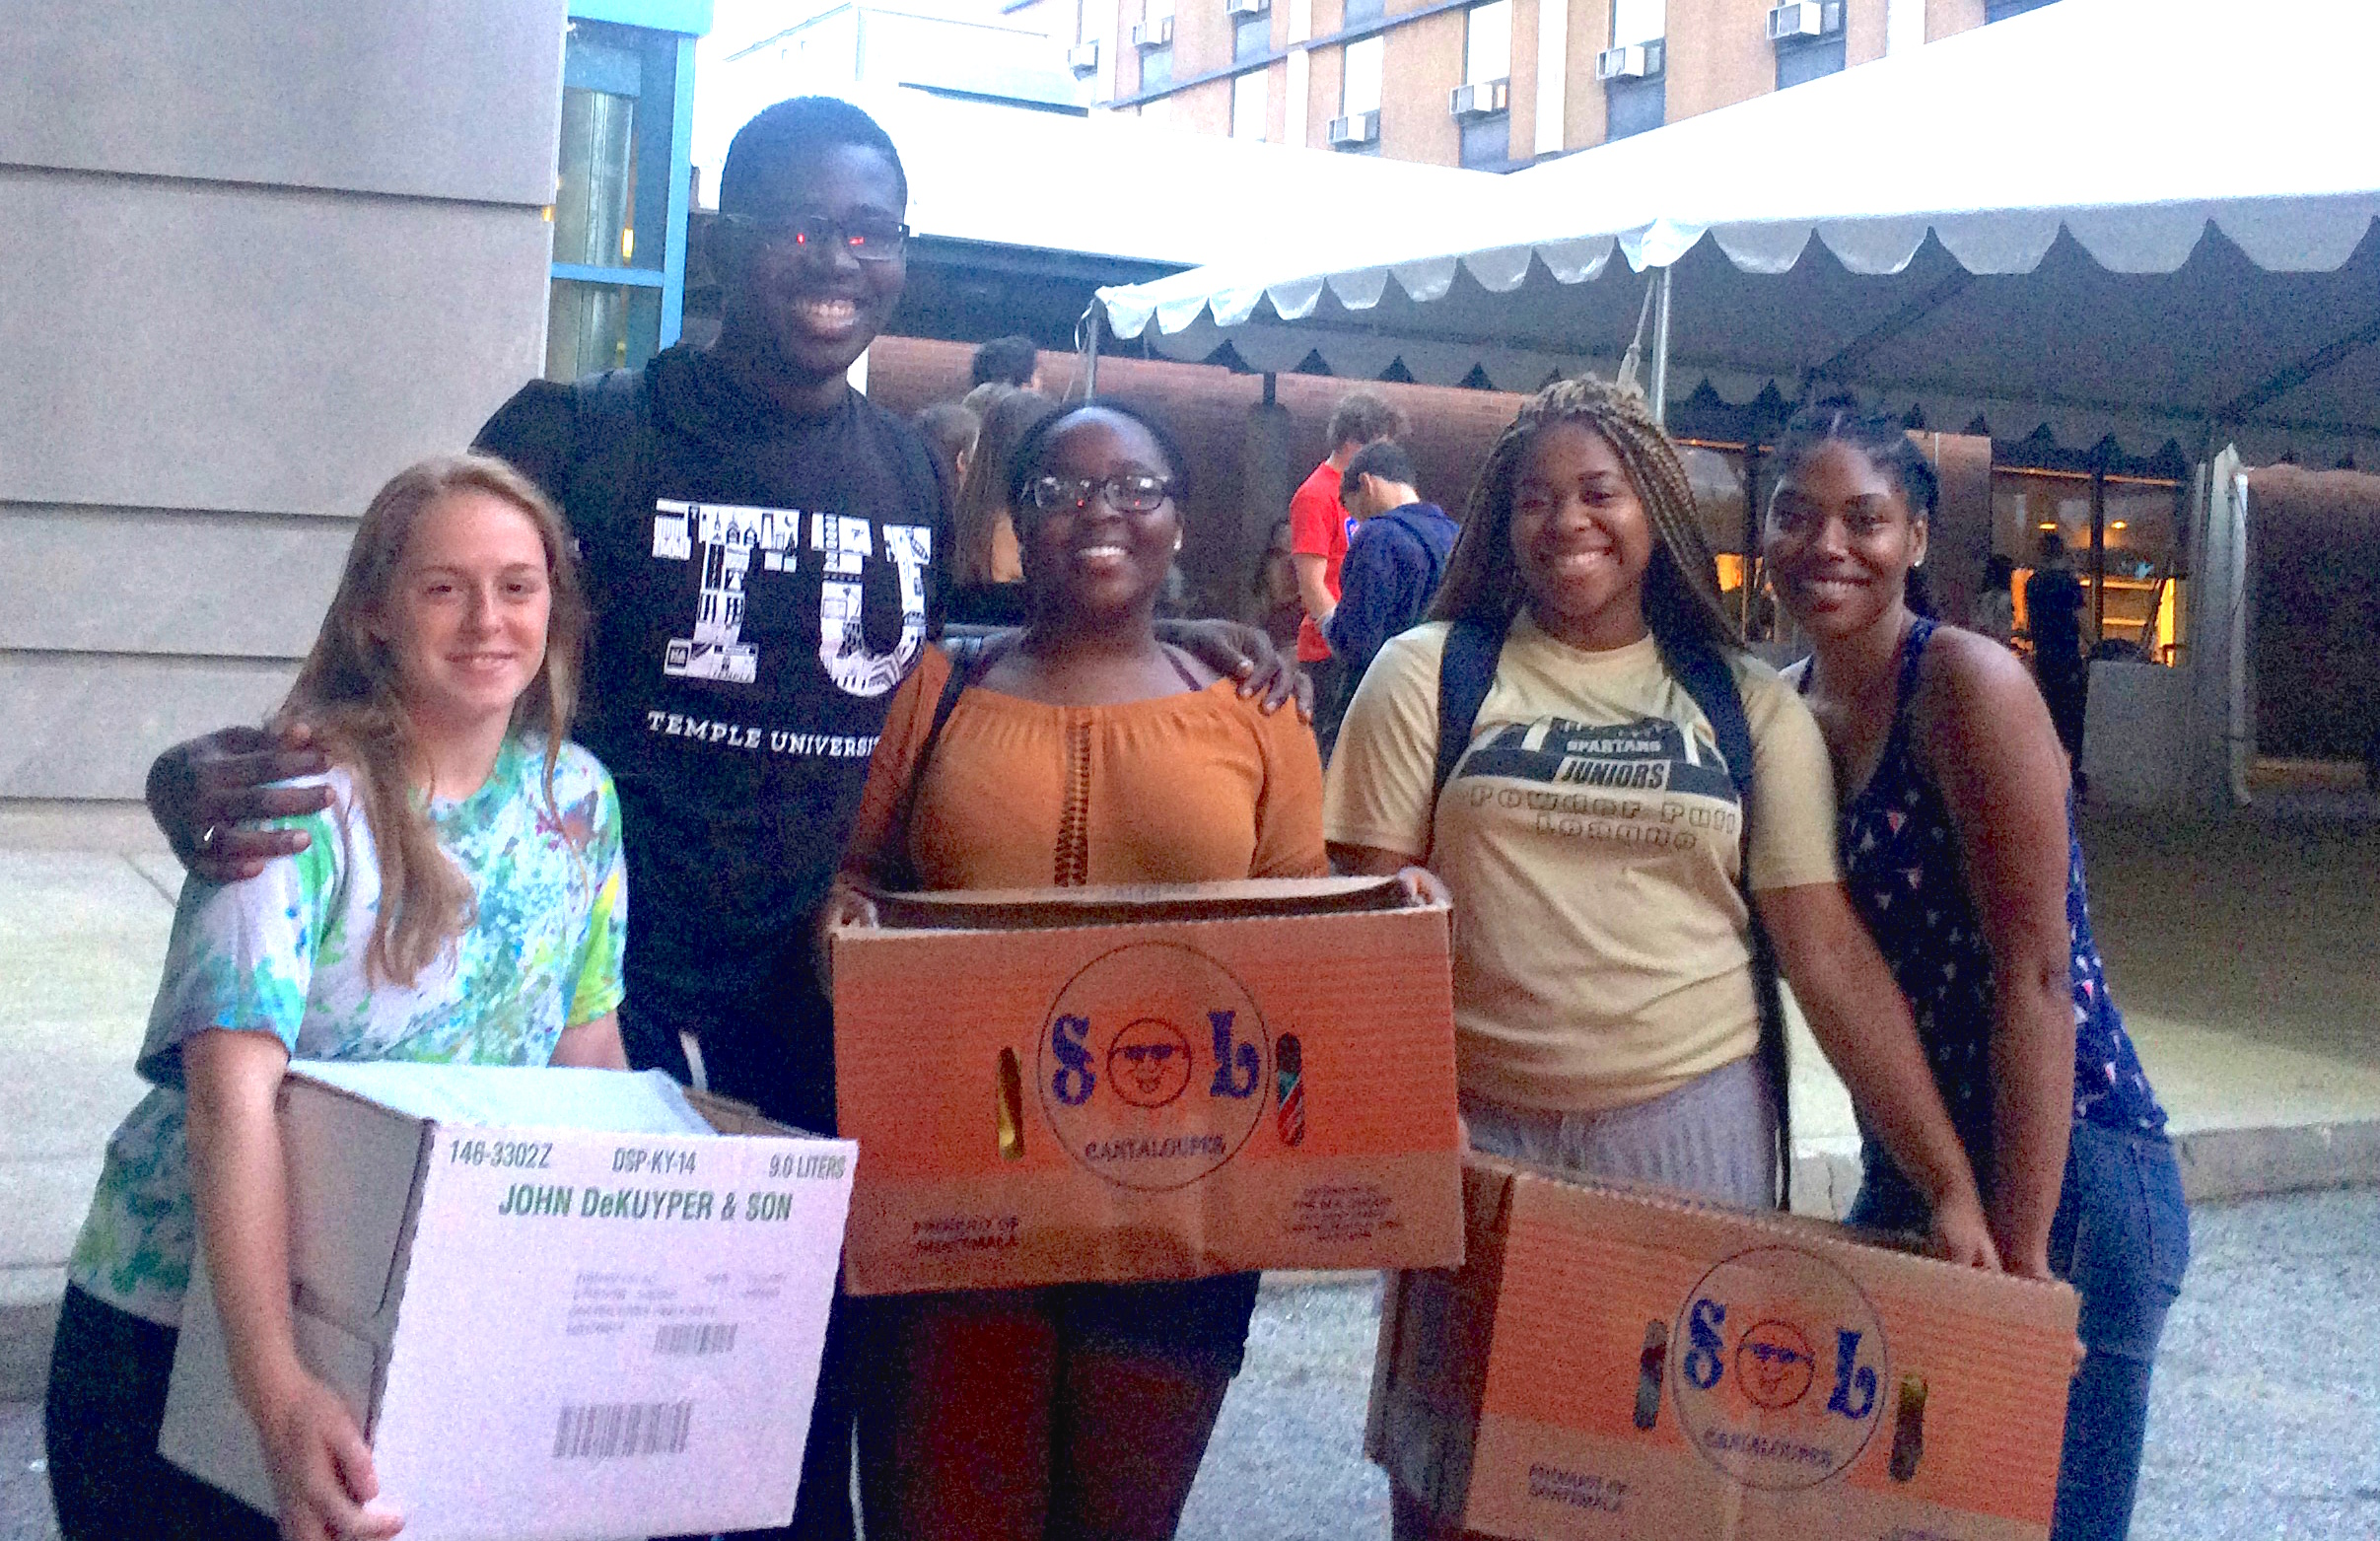 Maya (right) pictured with MHS alumni at Temple University who received her care packages.